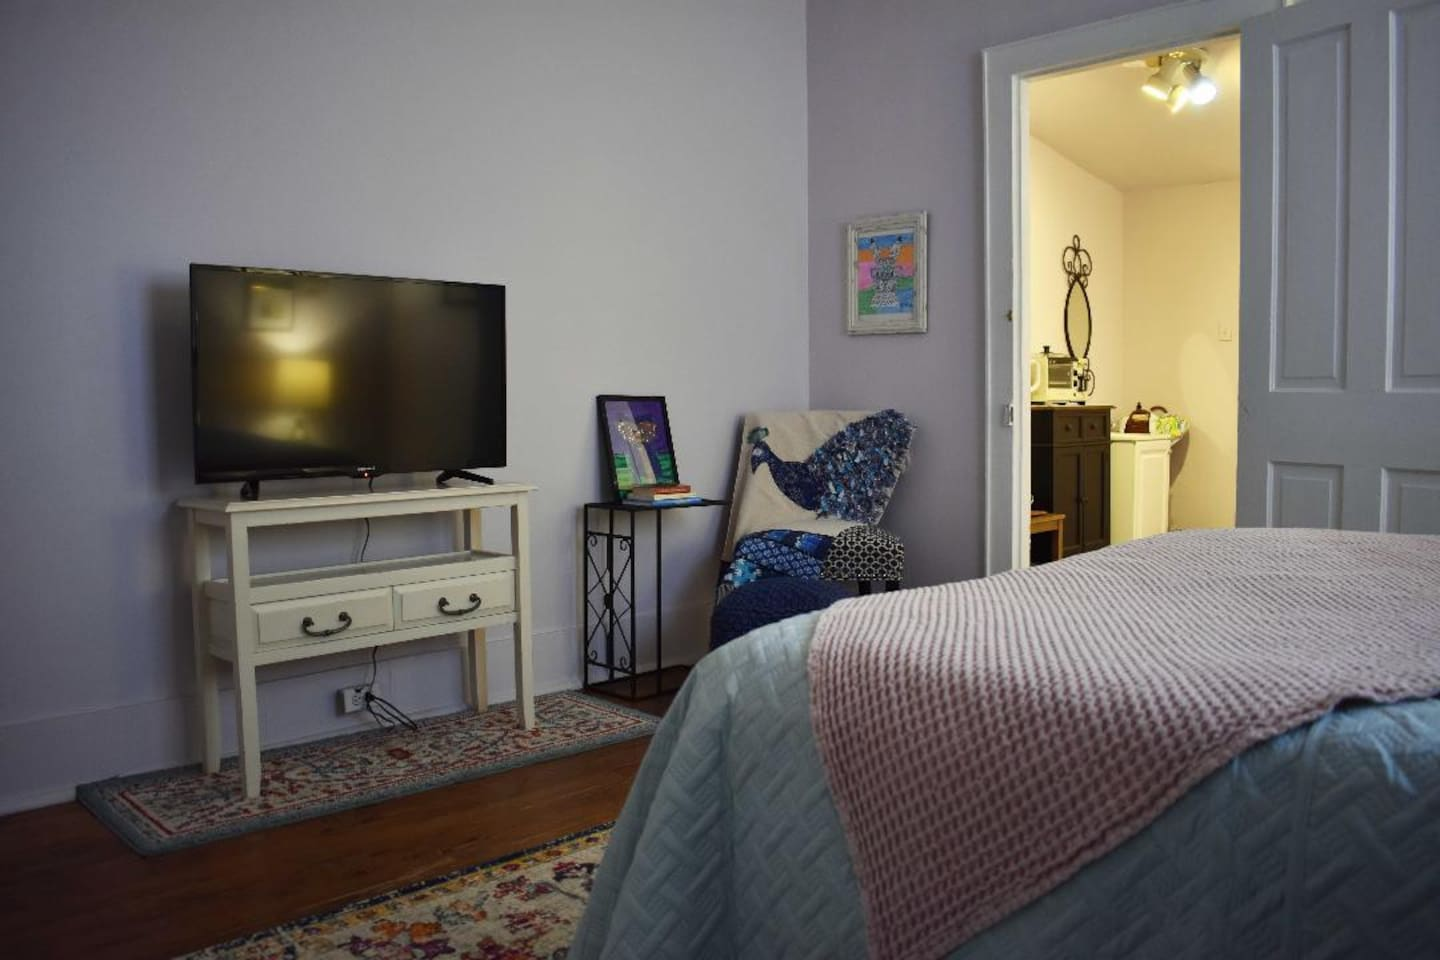 Cozy and chic private guest quarters with roomy bedroom, walk-in closet, kitchenette and bathroom.